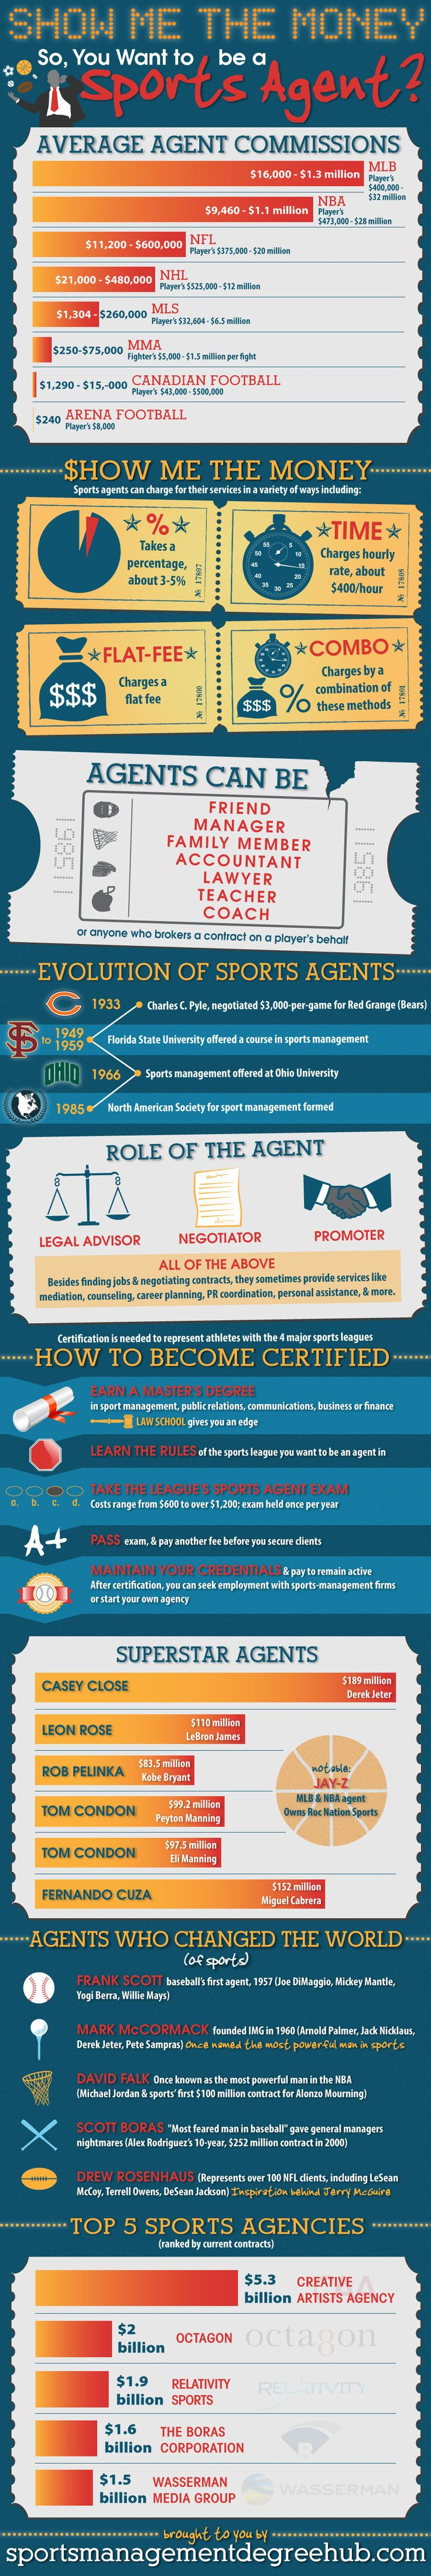 Infographic Seeks To Show Interested Sports Agents The Money In The Business | Sports Agent Blog